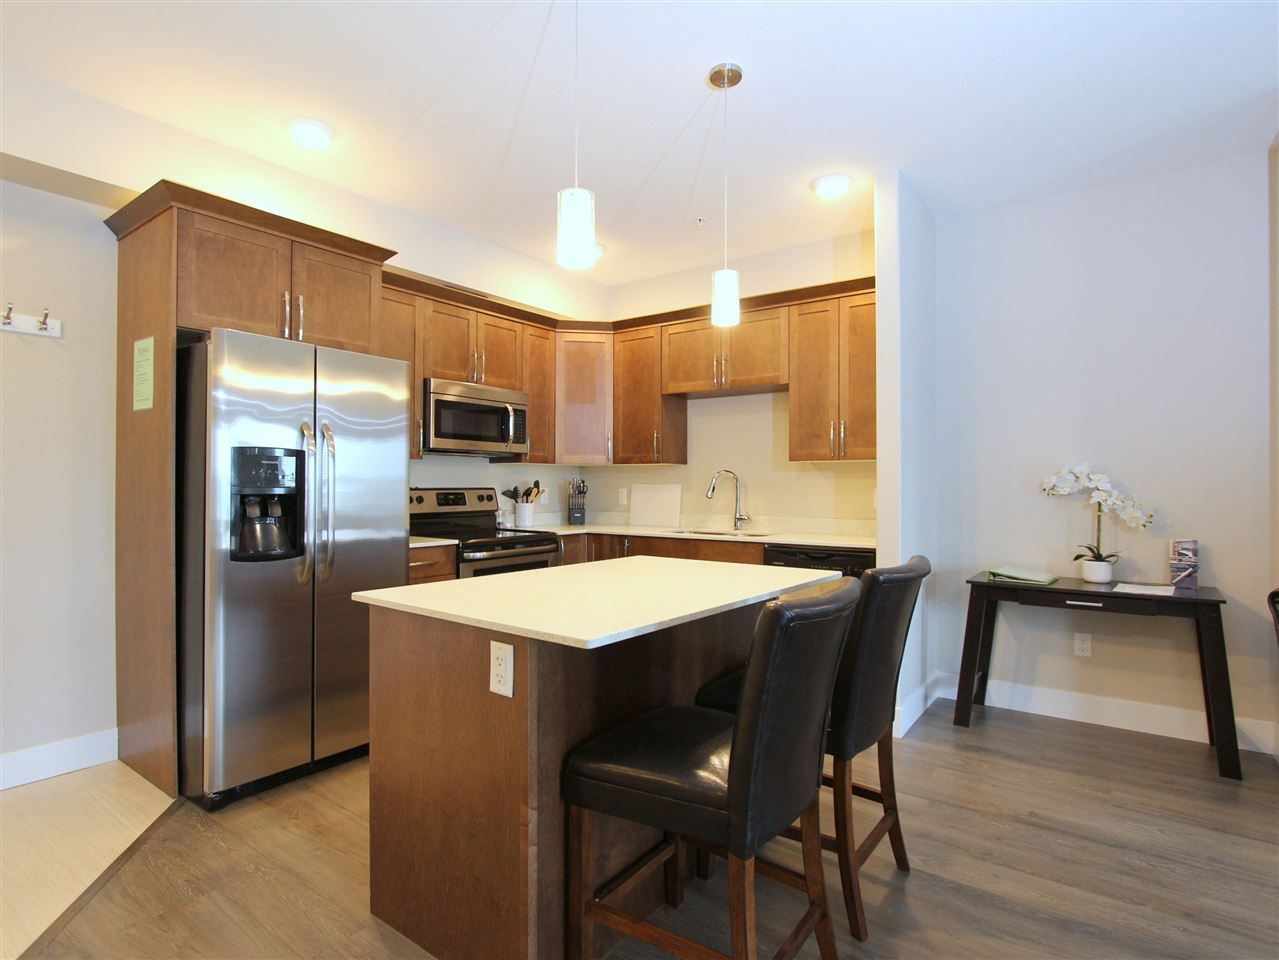 Main Photo: 207 11205 105 AVENUE in : Fort St. John - City NW Condo for sale : MLS®# R2189745